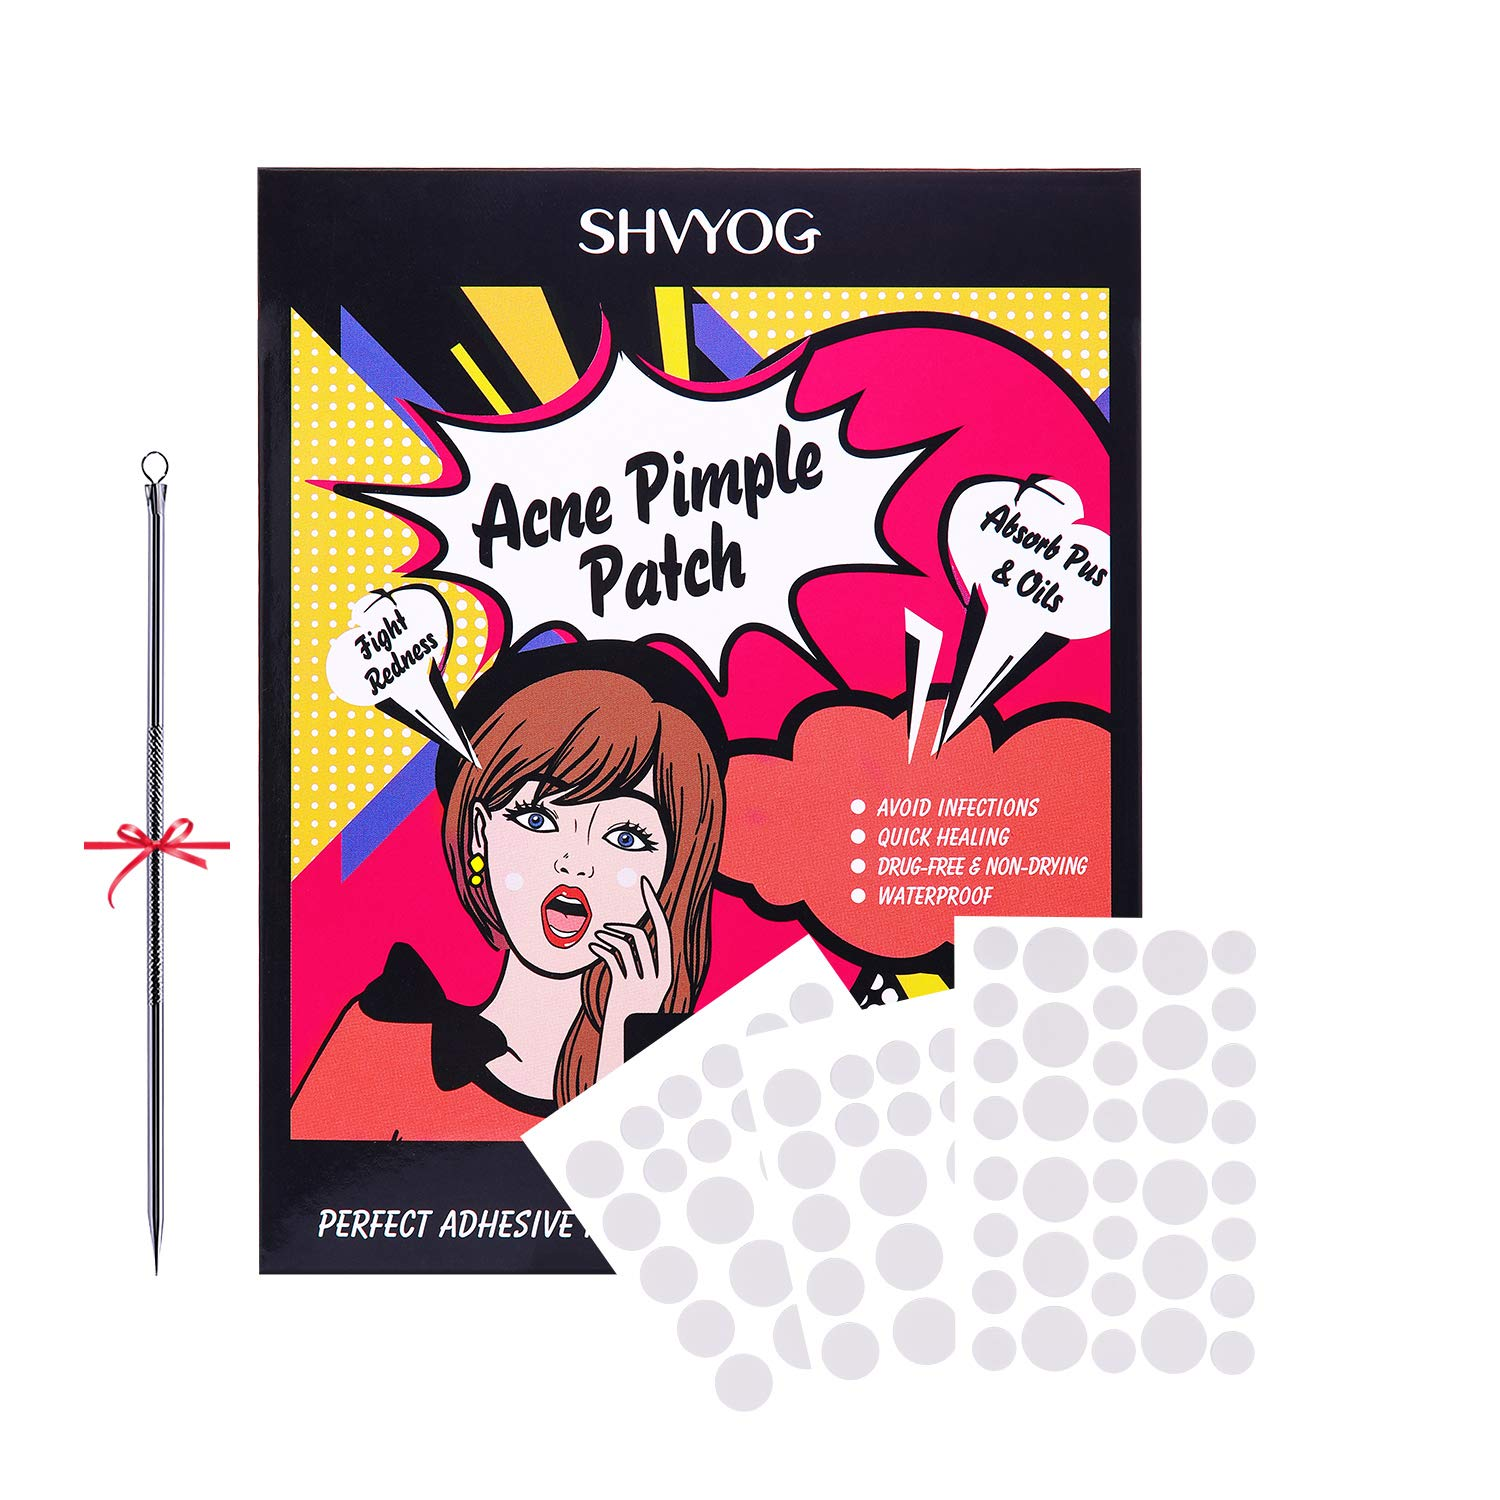 Acne Patch, SHVYOG Acne Pimple Master Patch Acne Spot Treatment Dot Absorbing Cover, Acne Spot Stickers Blemish Patch Hydrocolloid Acne Cover Patch (3 Packs / 84 Patches) by SHVYOG